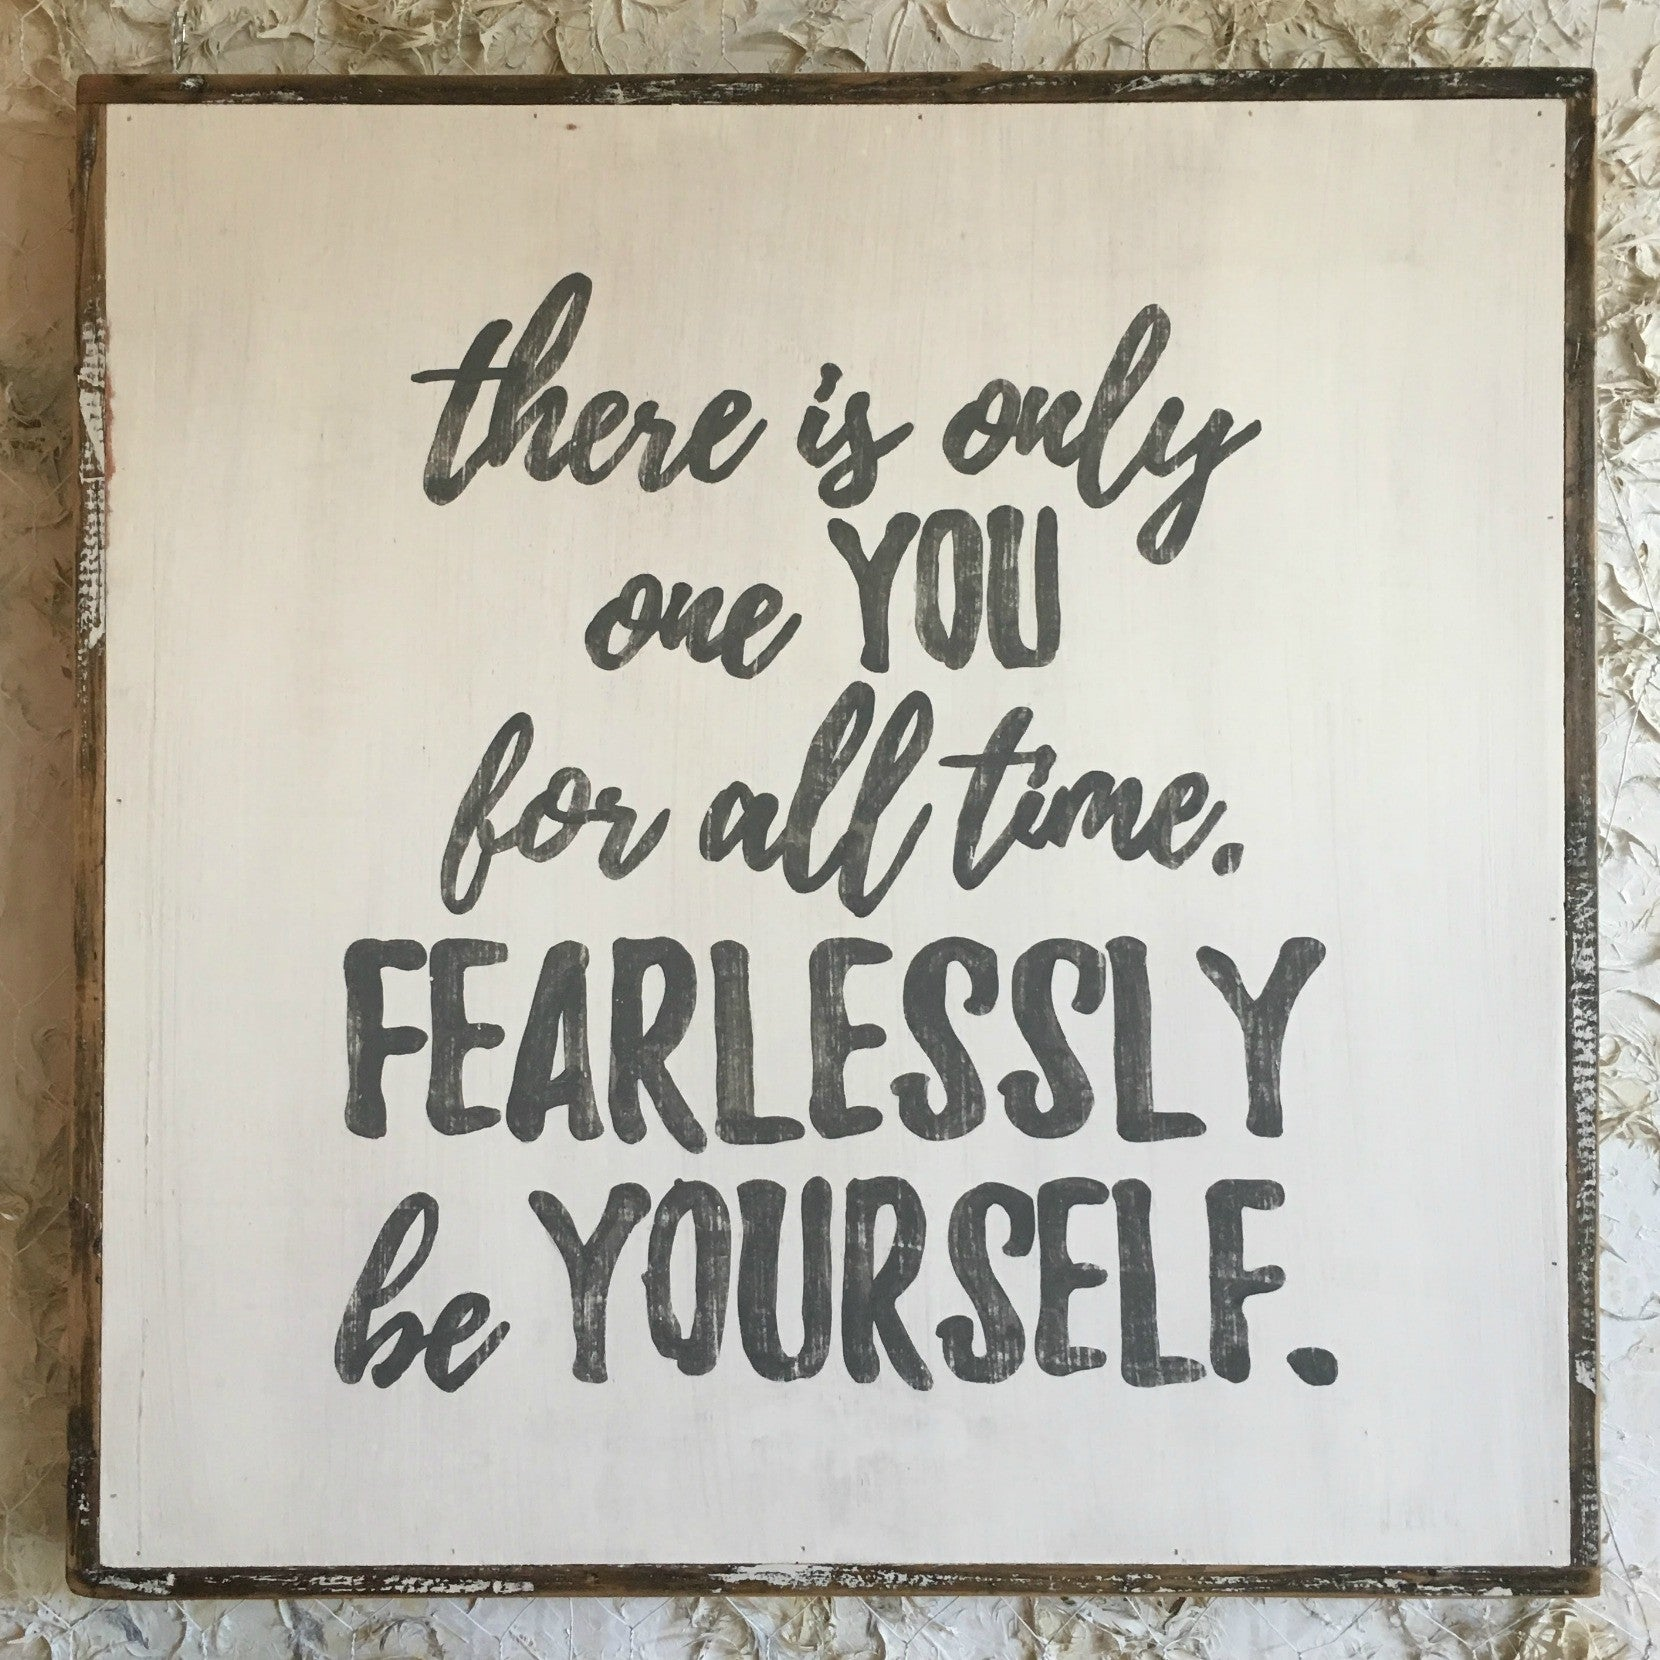 Fearlessly Be Yourself